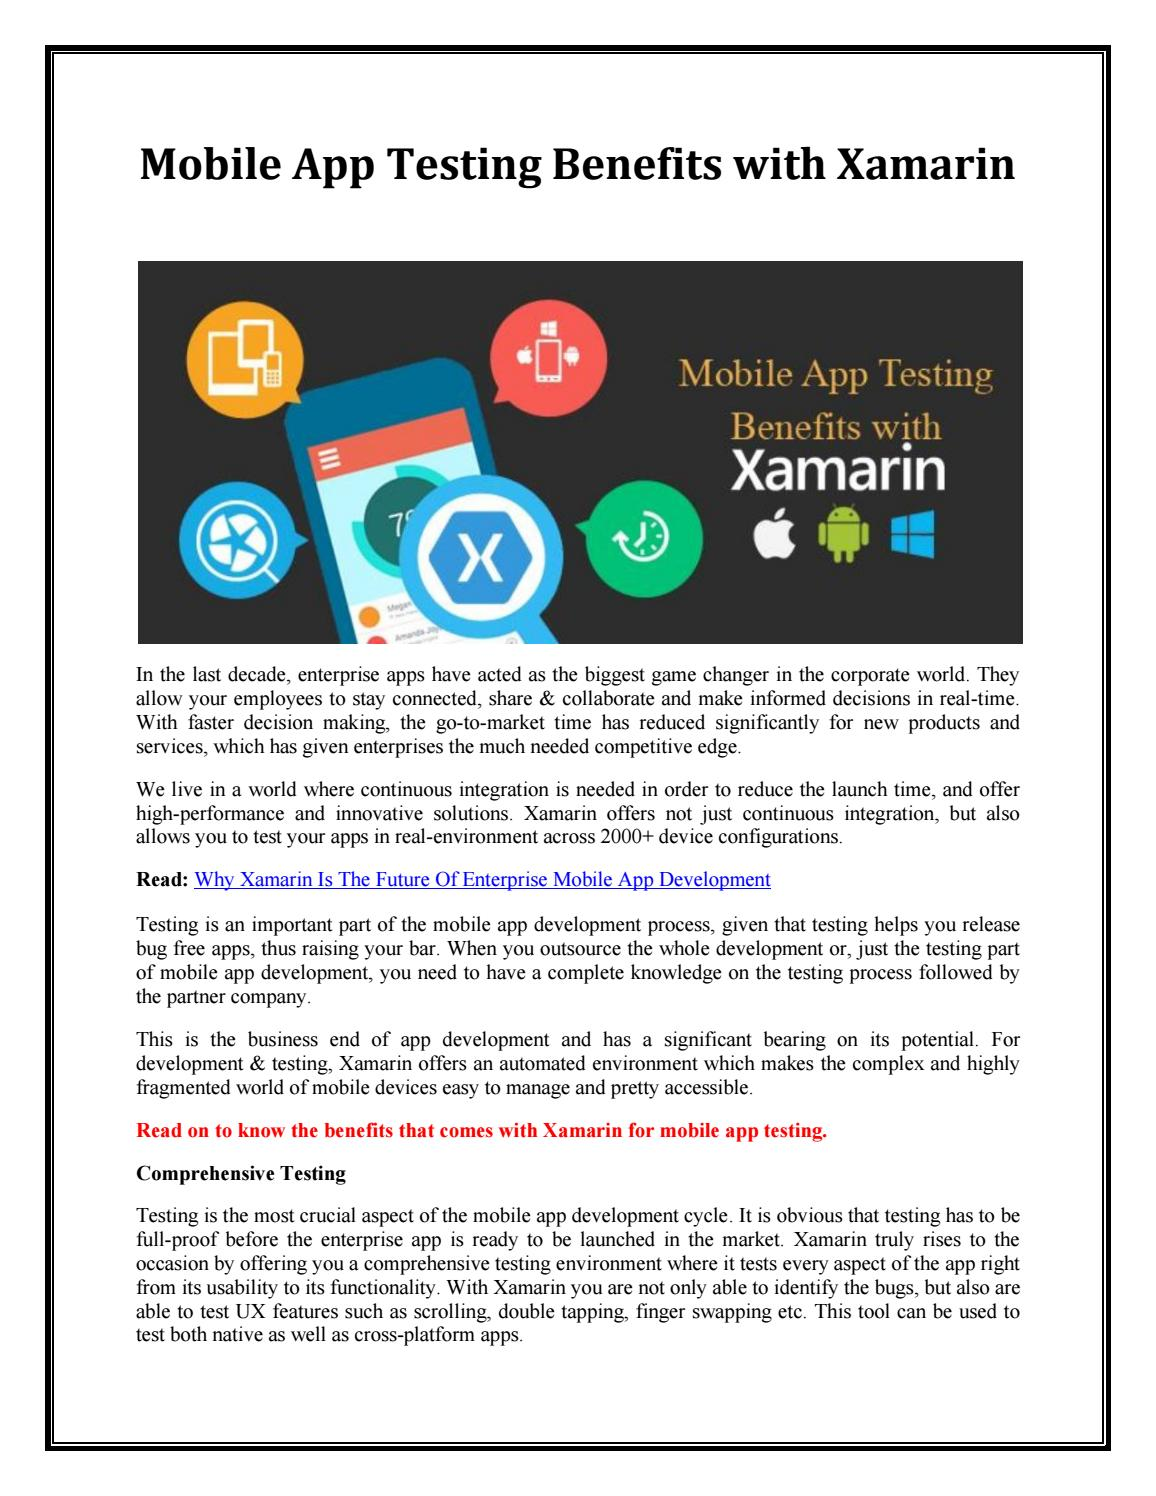 Mobile app testing benefits with xamarin by Scarlett Lee - issuu